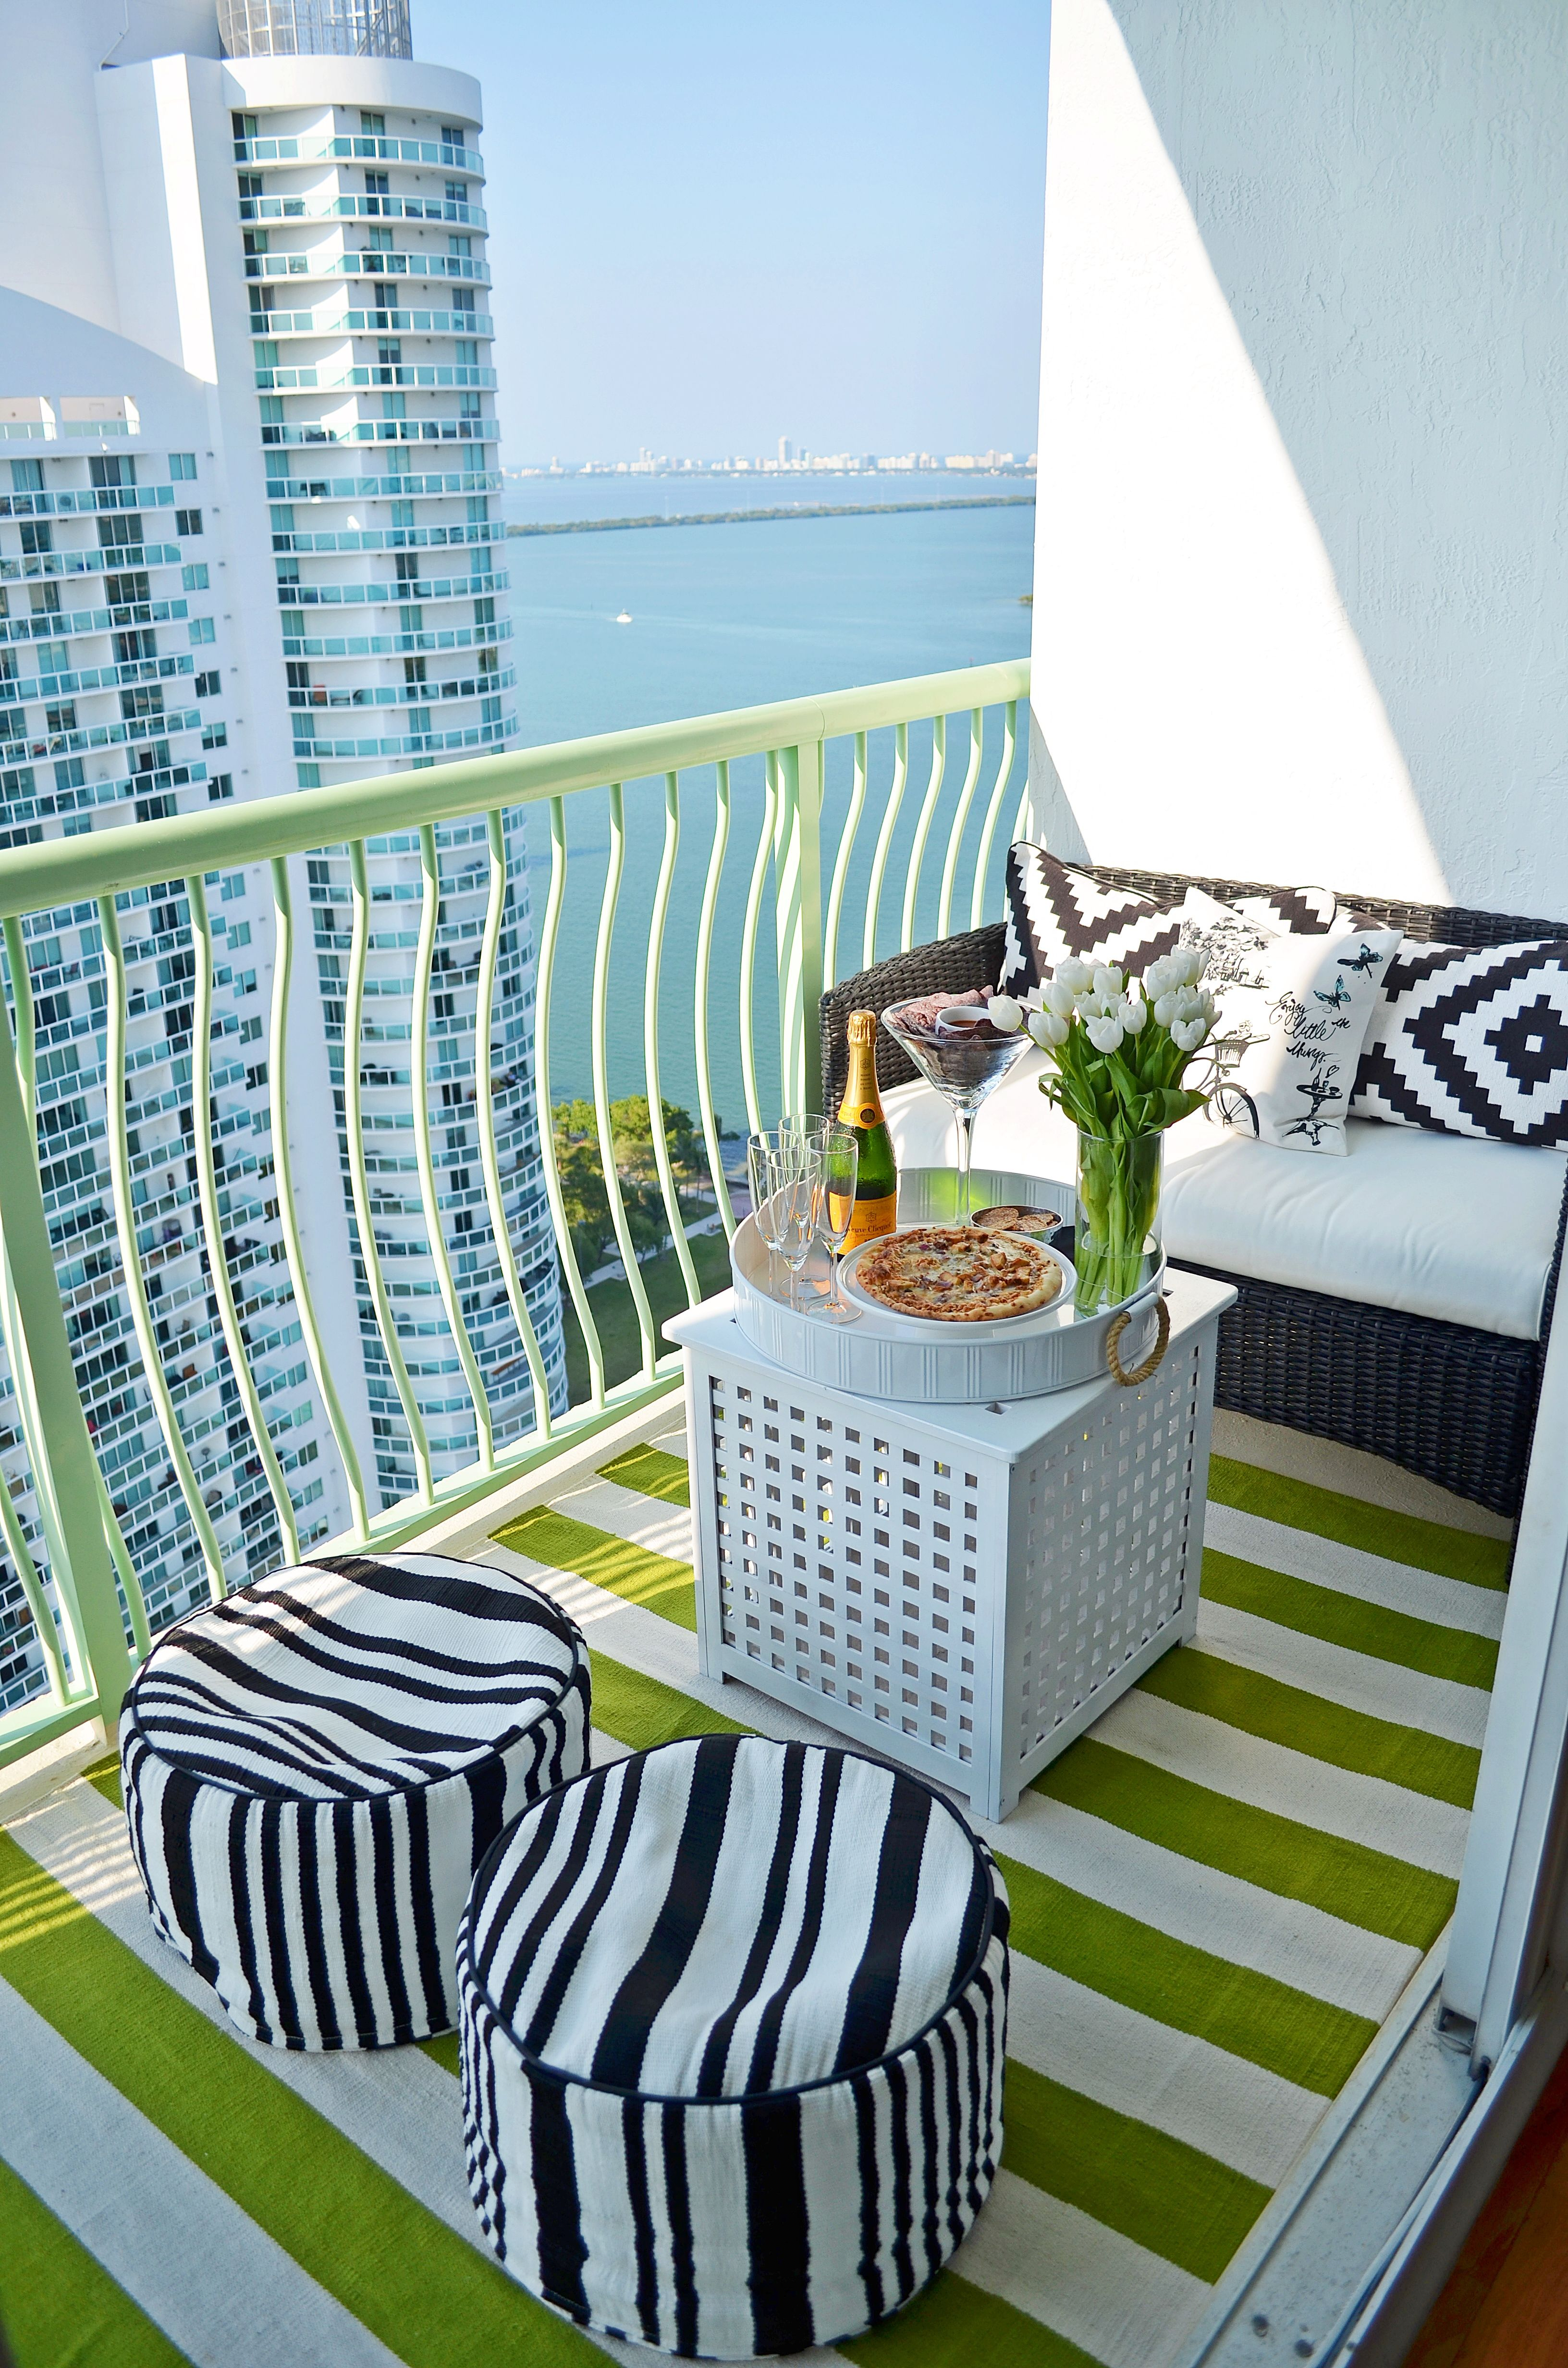 Apartment patio decor - Find This Pin And More On Front Patio